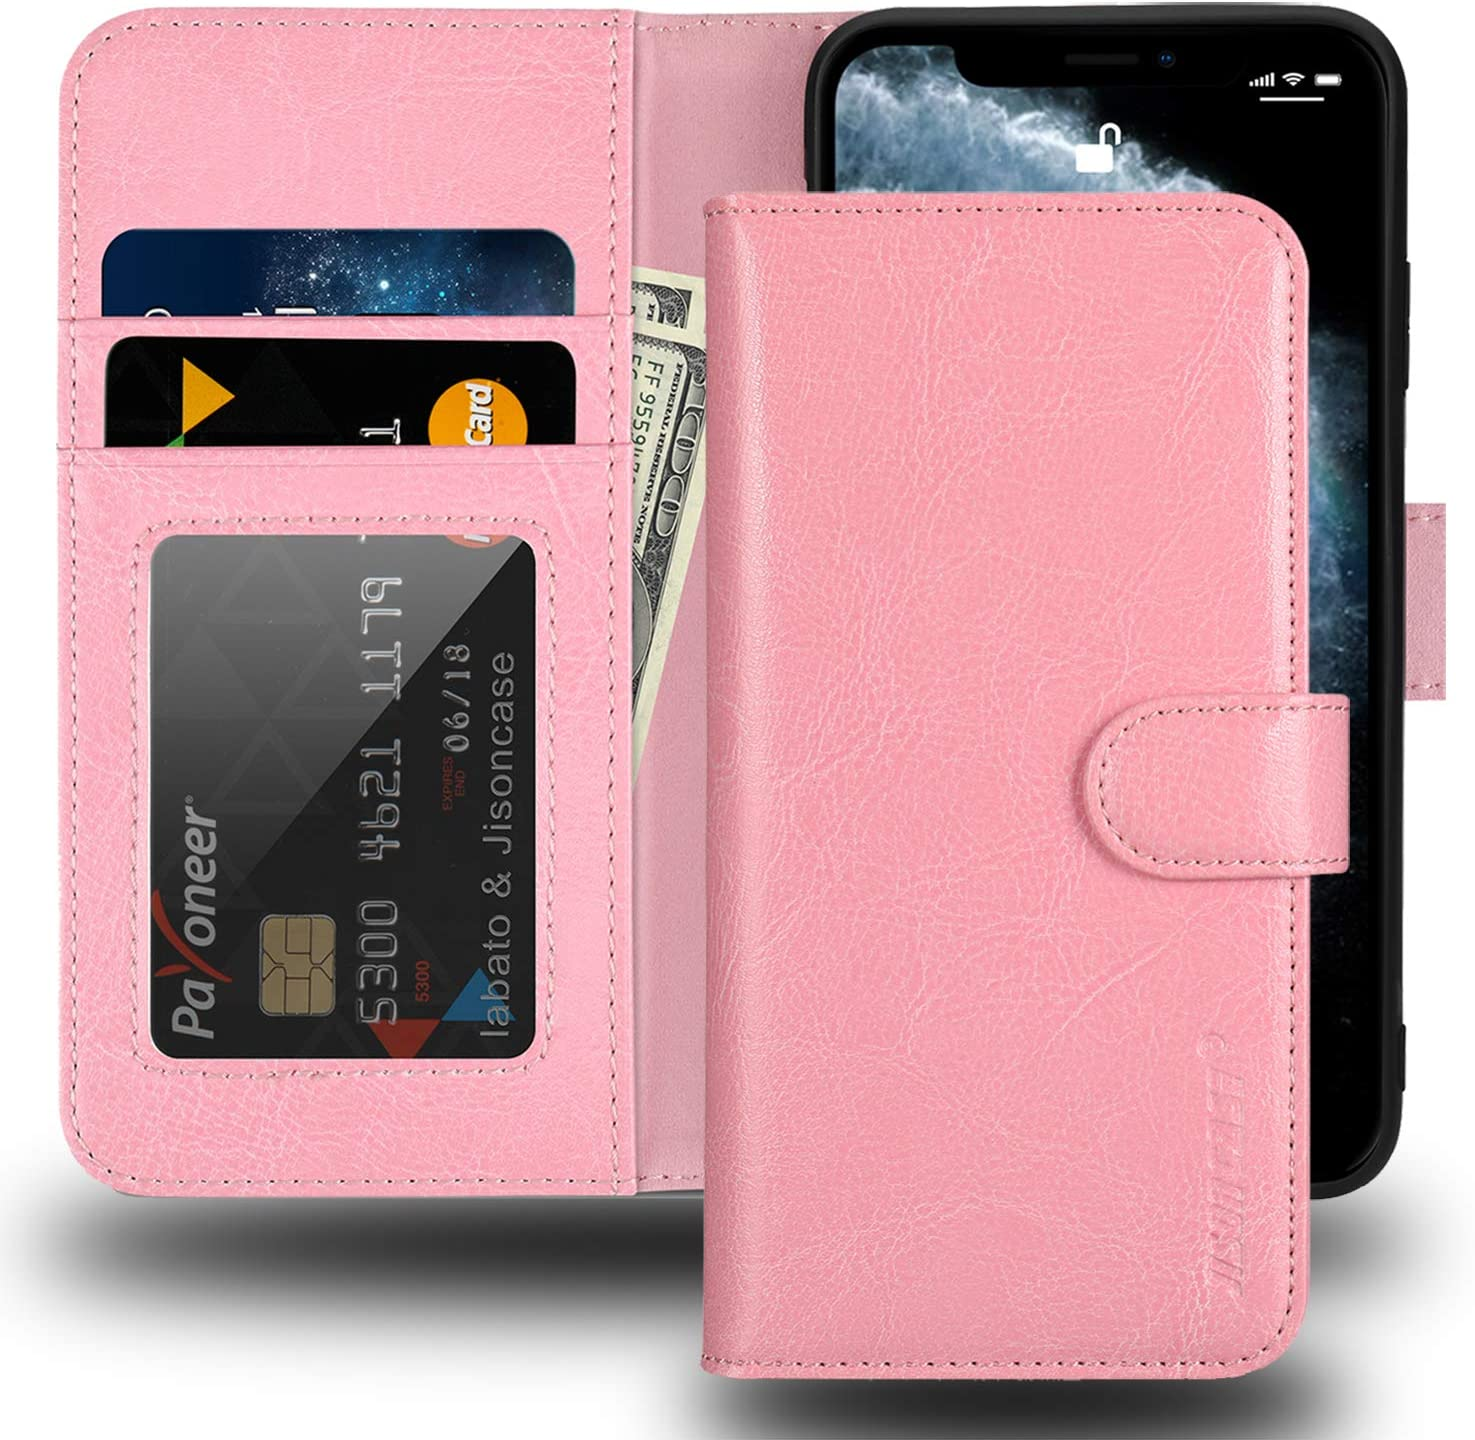 "JISONCASE iPhone X Wallet Case,Genuine Leather iPhone Xs Case with Card Holder & RFID Blocking & Wireless Charging,Shockproof Protective Cover Flip Case for Apple iPhone X 10 XS 5.8""- Pink"